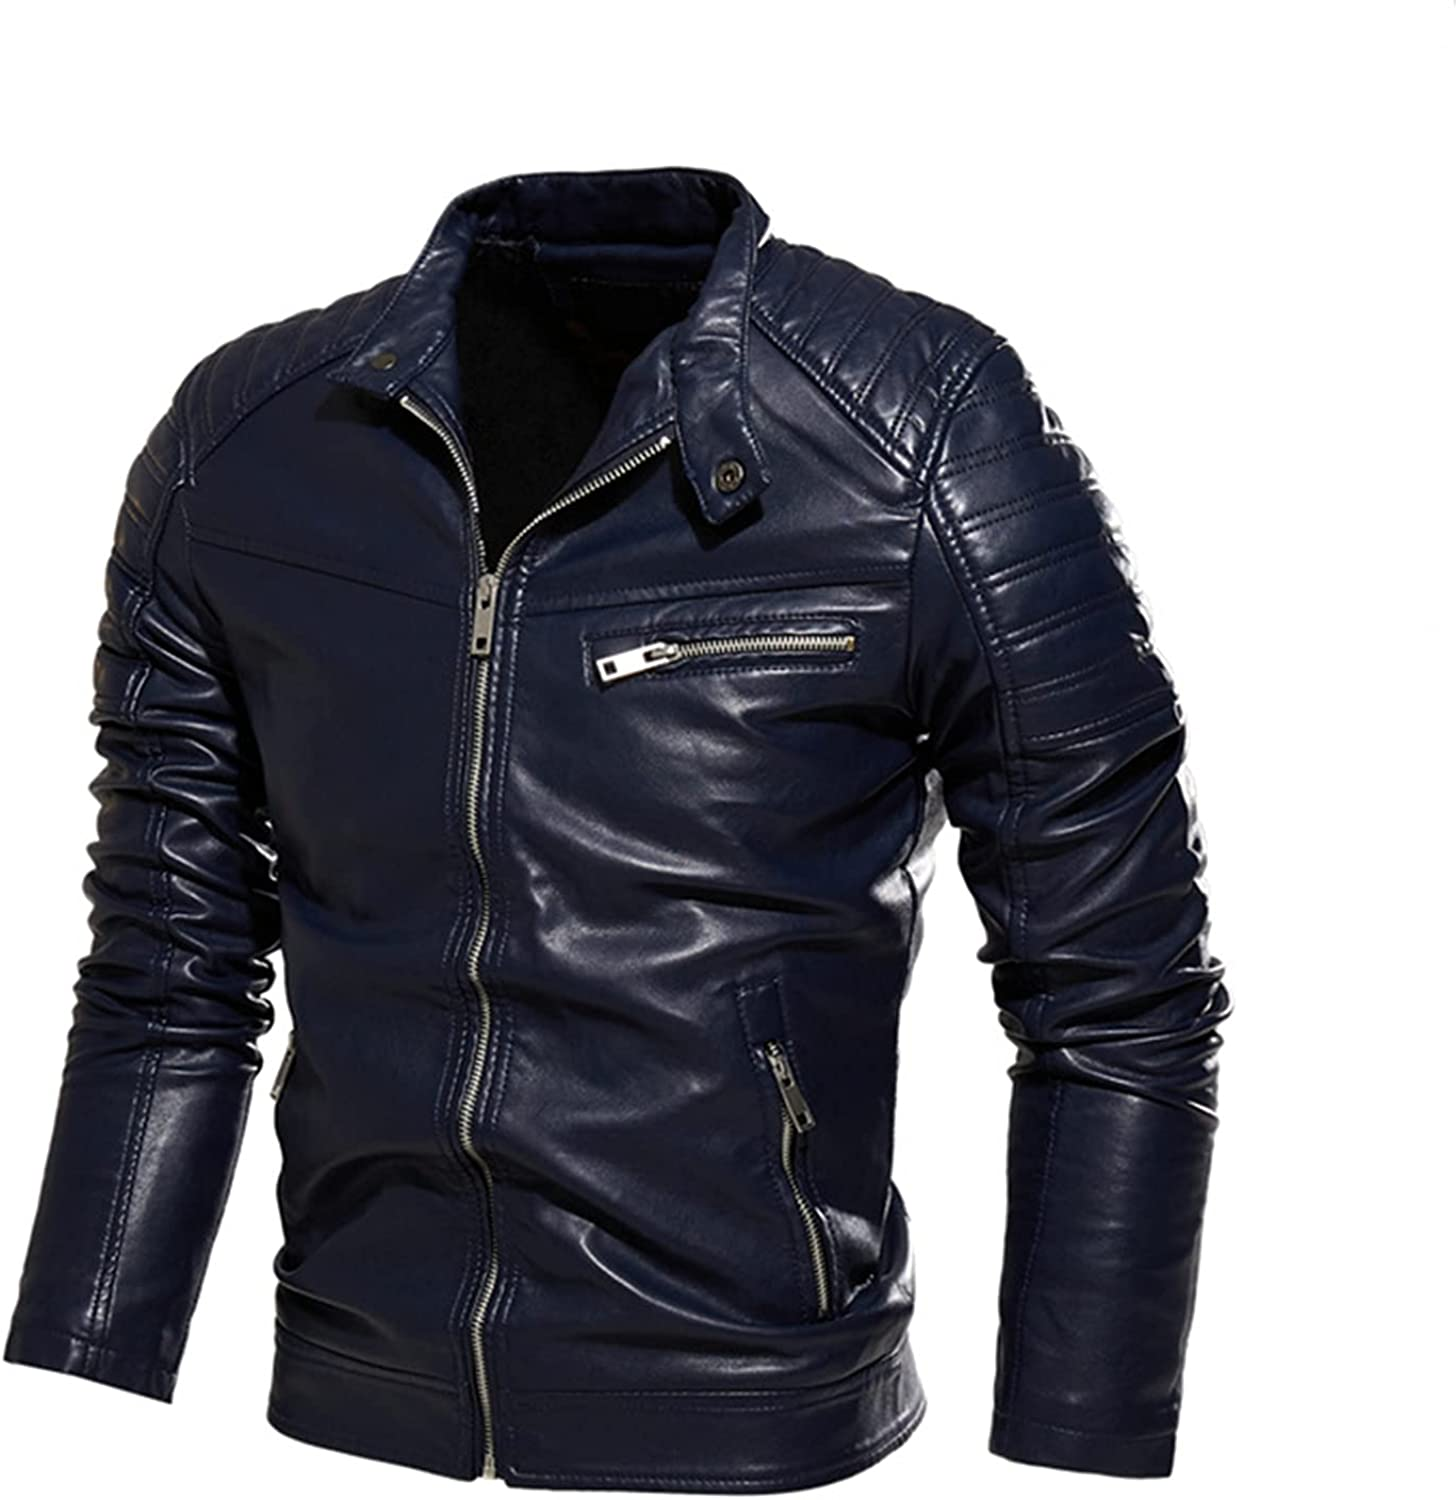 Men's Casual Zip Up Slim Coat,Bomber Faux Leather Jacket,for Casual Outdoor Riding Wear